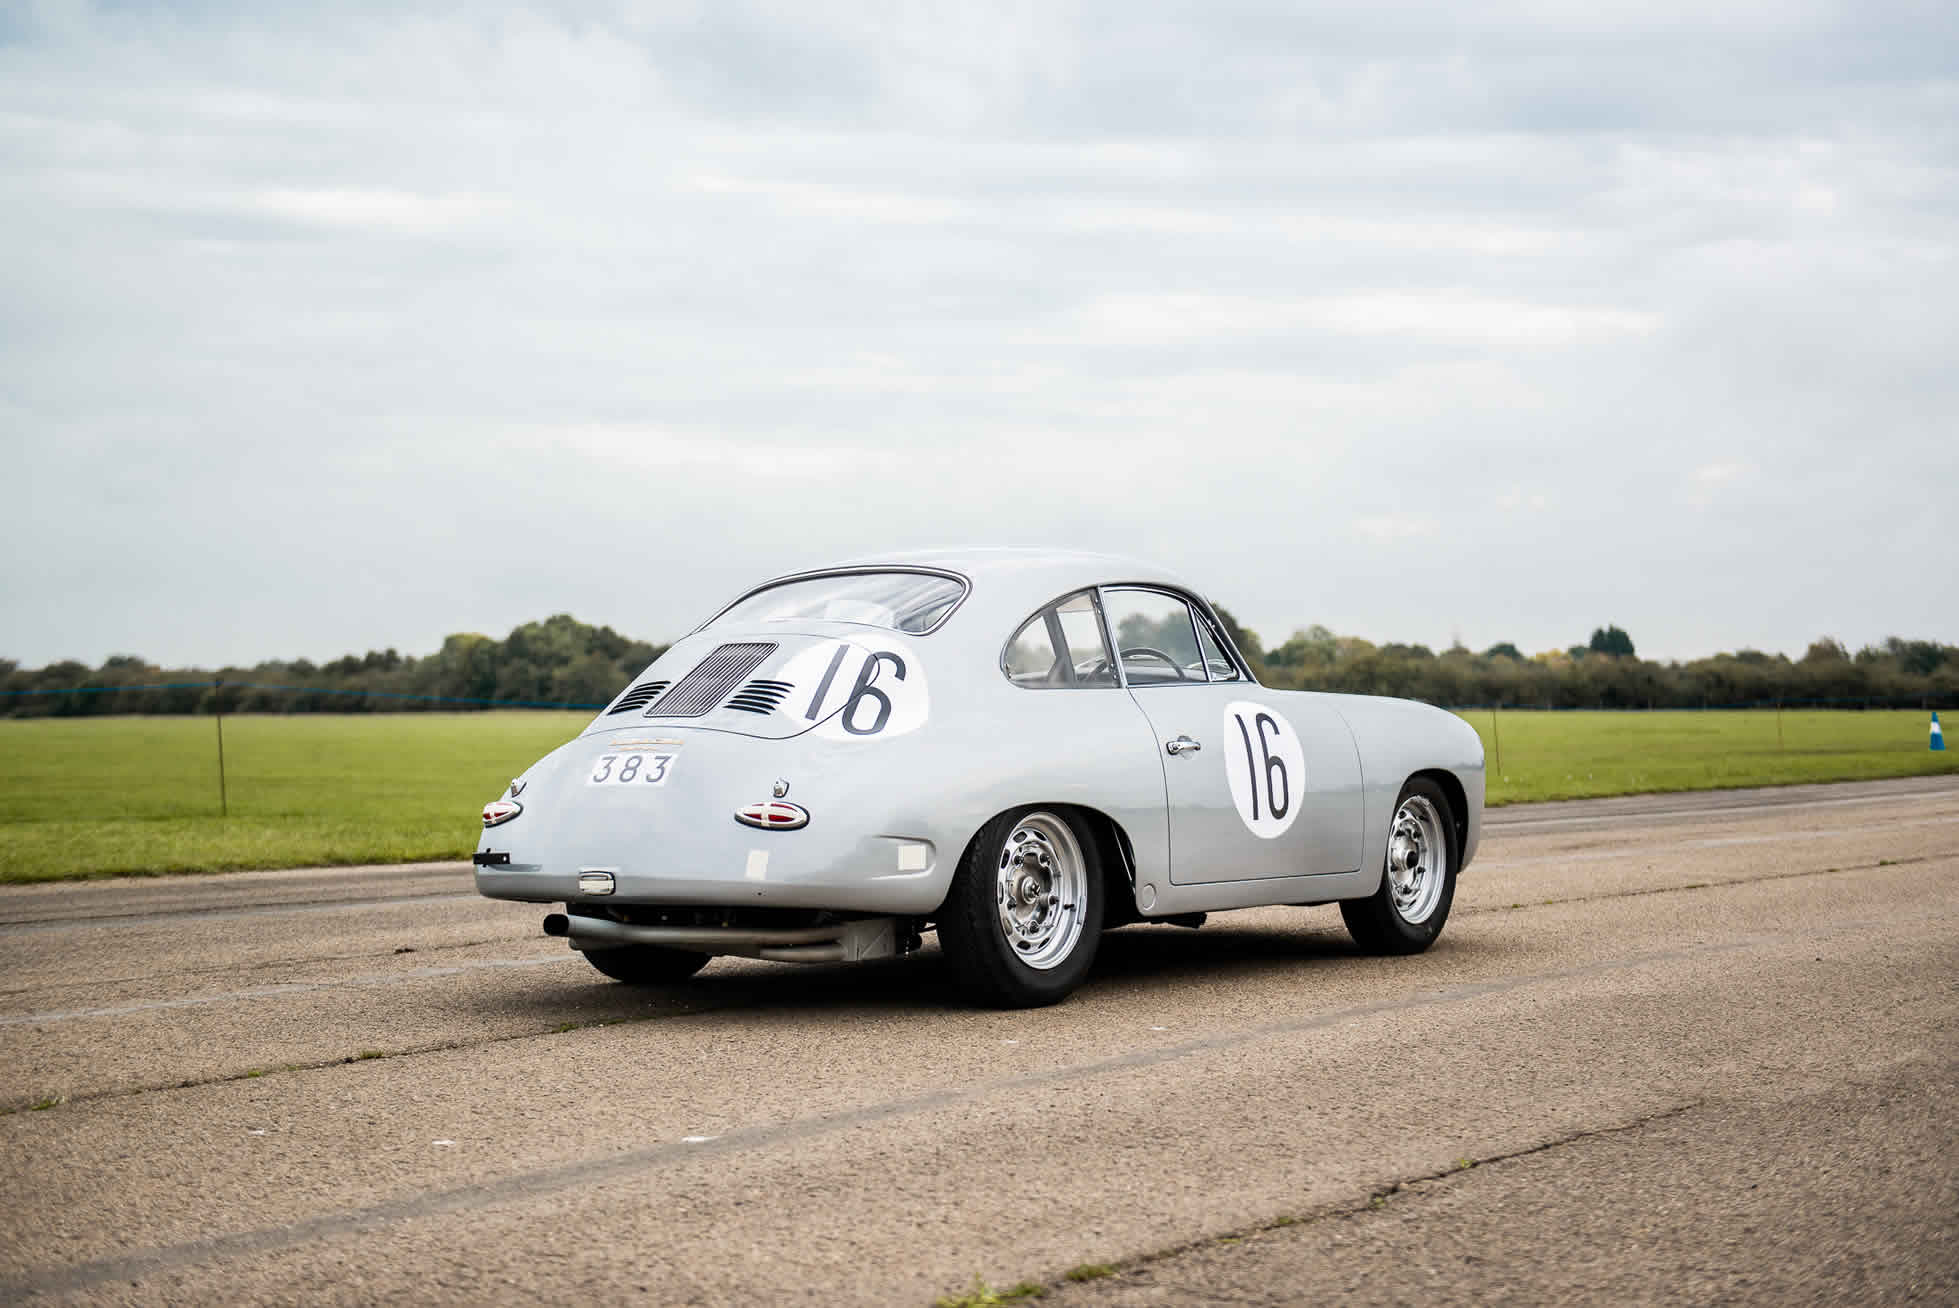 1961 Porsche 356B Carrera GT. For sale at Sports Purpose, Bicester Heritage, Oxon- rear quarter view